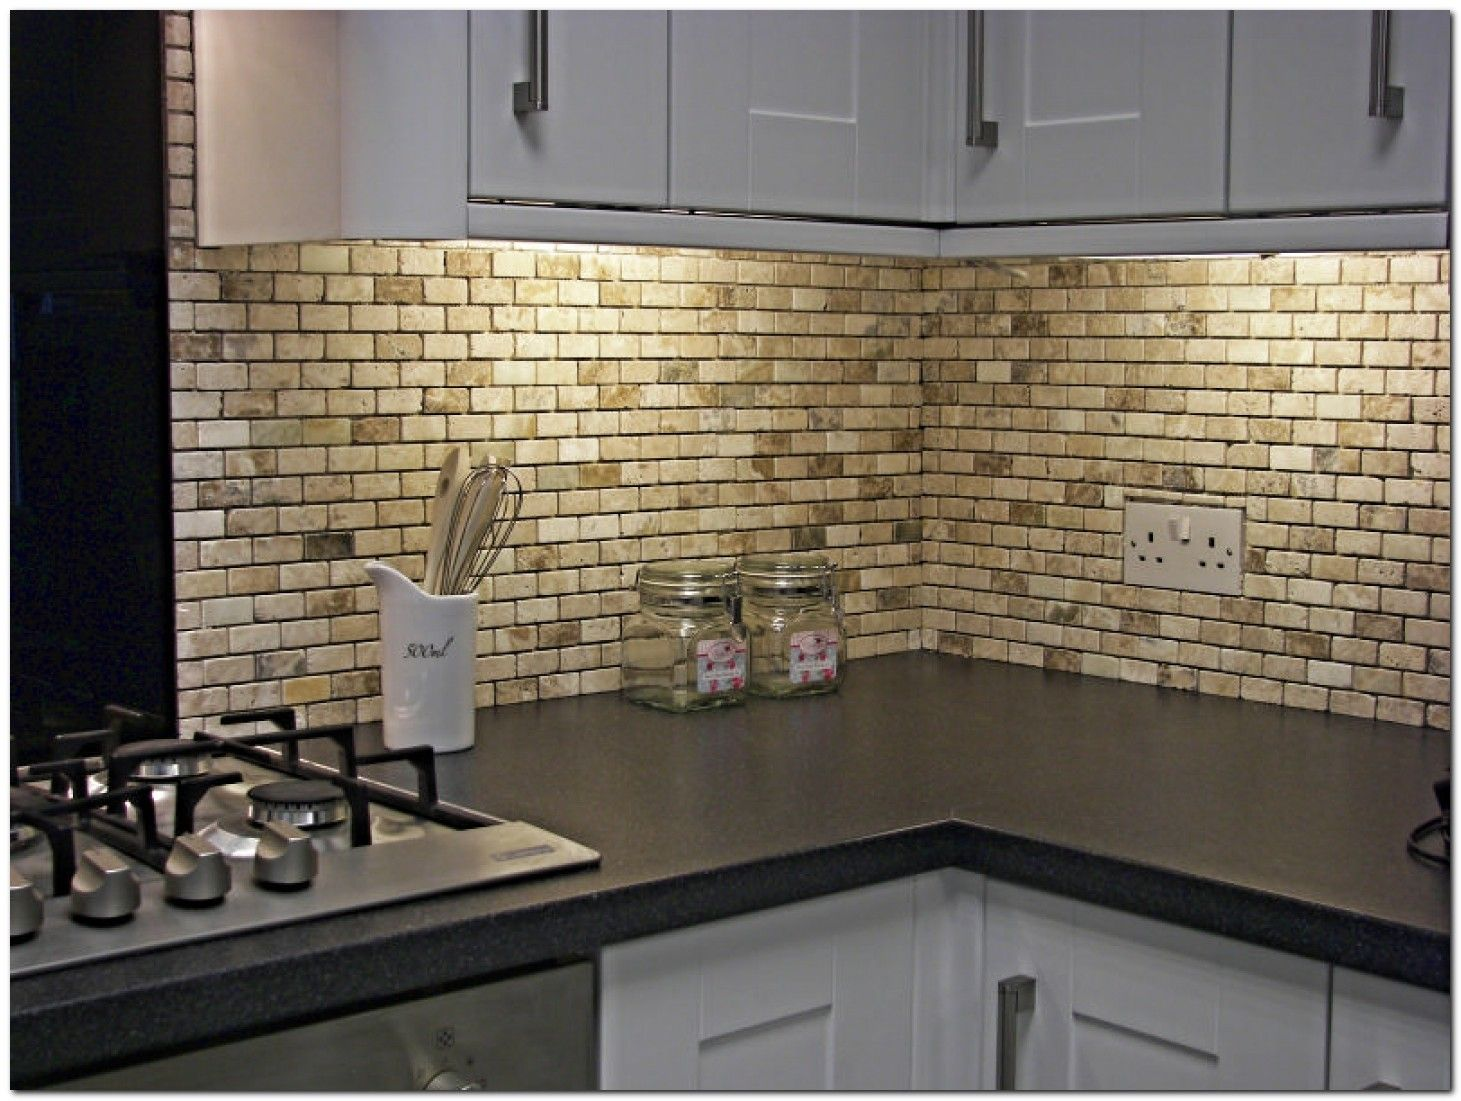 50 Simple And Beautiful Kitchen Tile Decoration Ideas The Urban Interior Kitchen Wall Design Kitchen Tiles Design Kitchen Backsplash Tile Designs